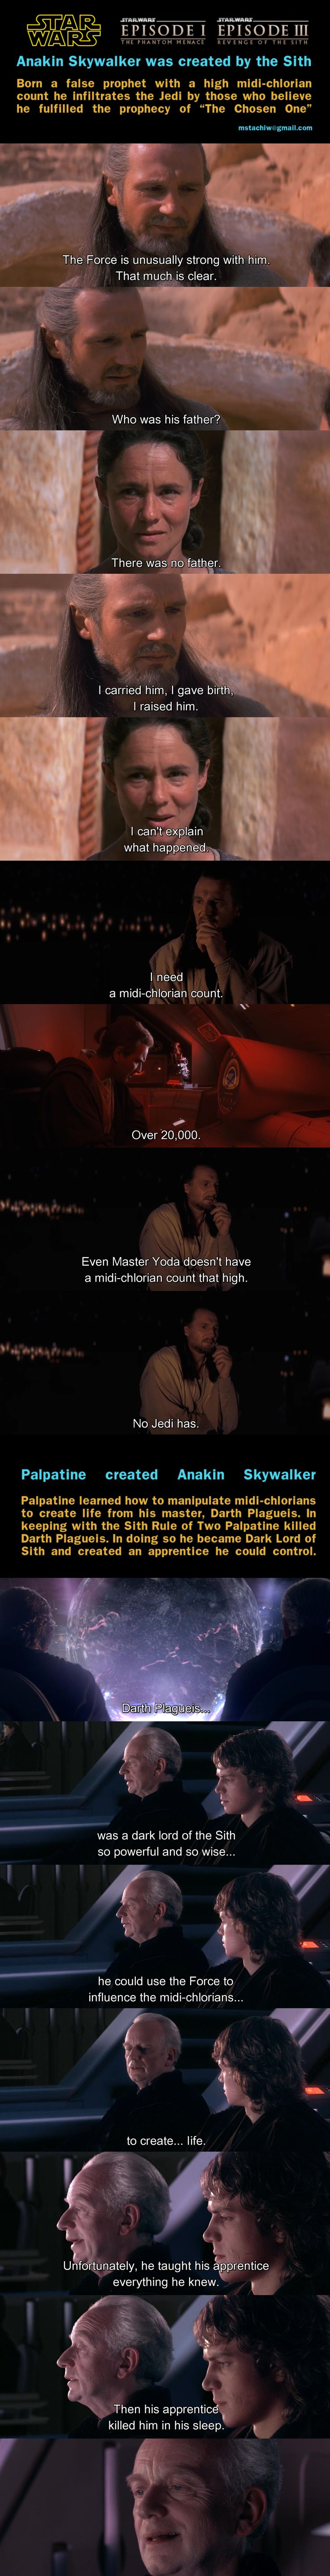 If the prequels were made with this theory in mind, we would have this epic reveal moment, that could rival the one at the end of